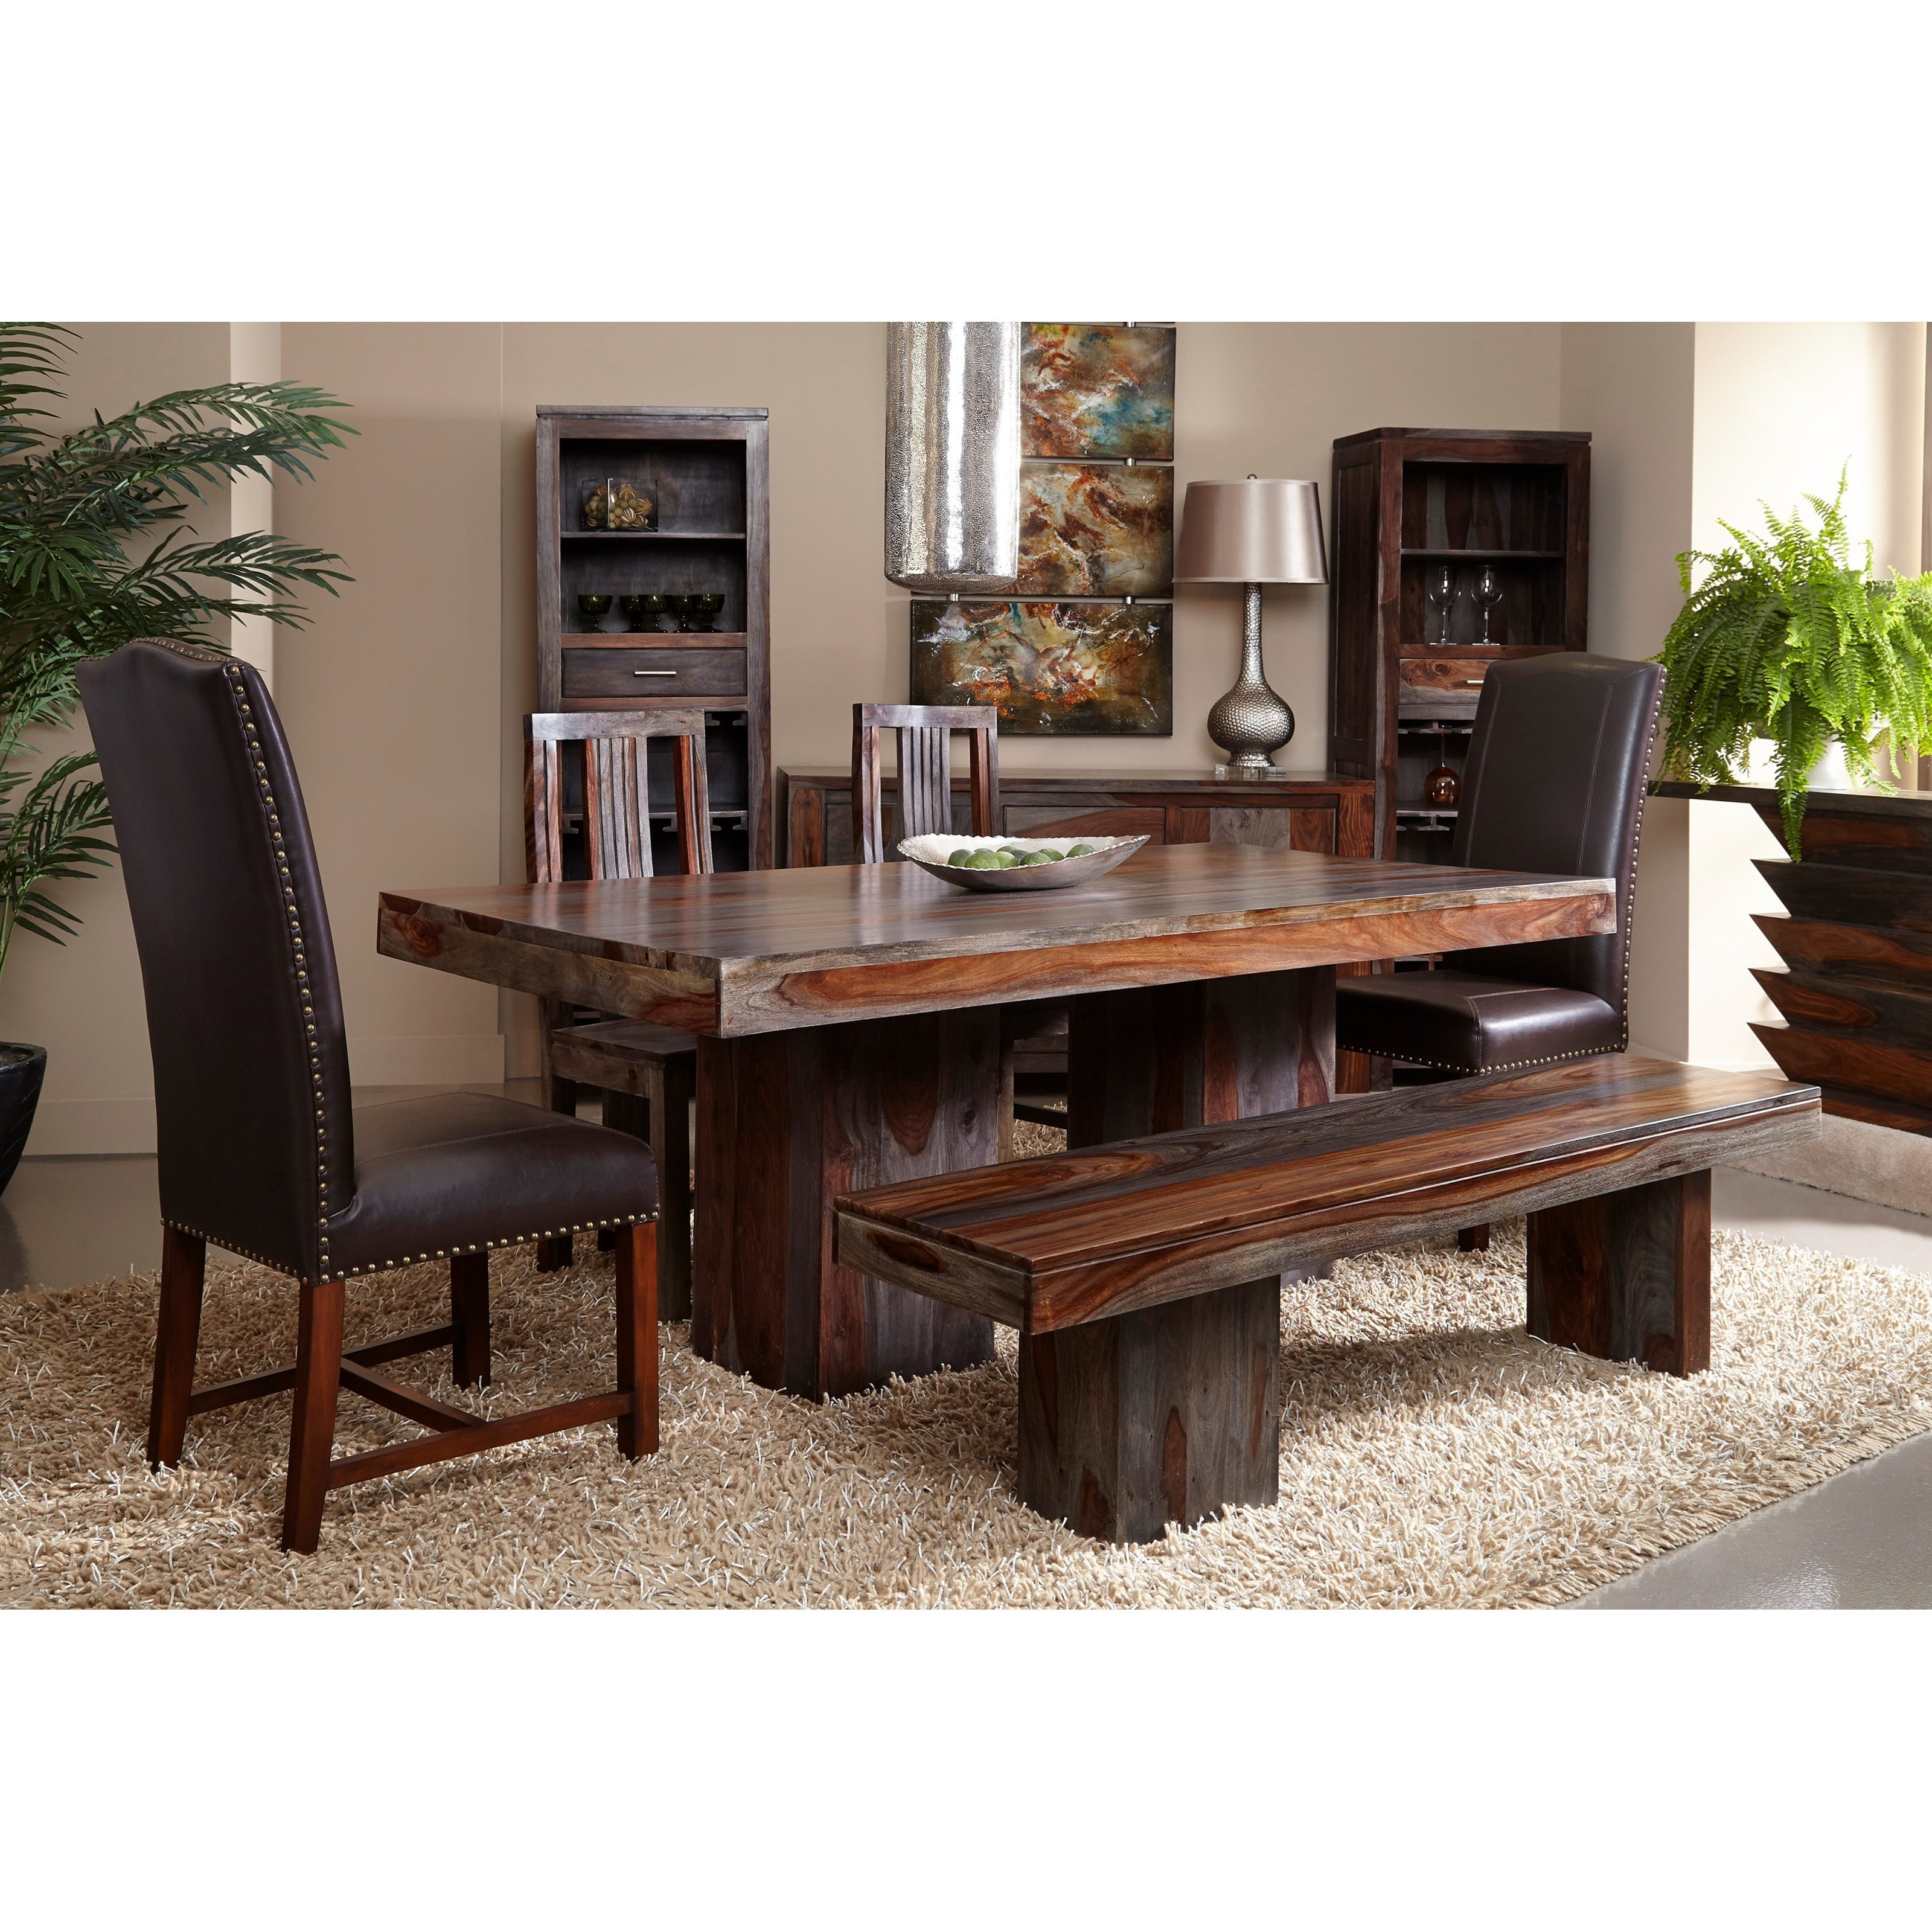 Coast to Coast Imports Grayson Dining Room Group  - Item Number: Dining Room Group 3